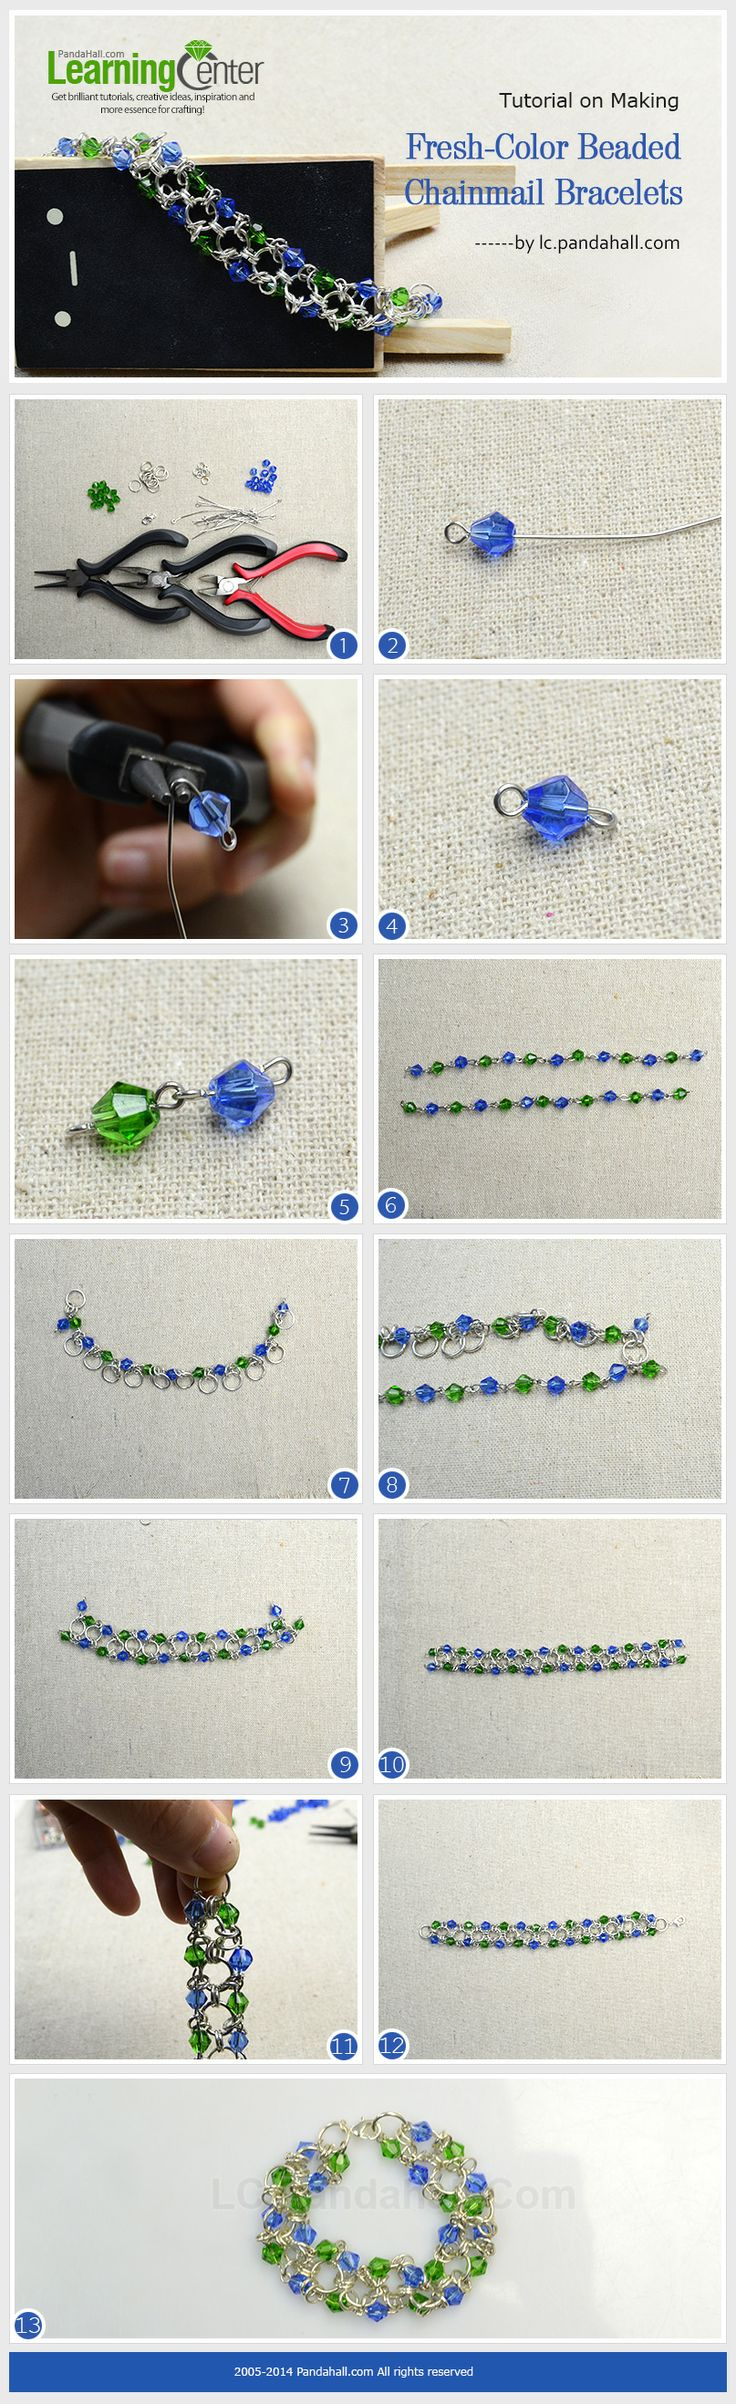 Tutorial on Making Fresh-Color Beaded Chainmail Bracelets